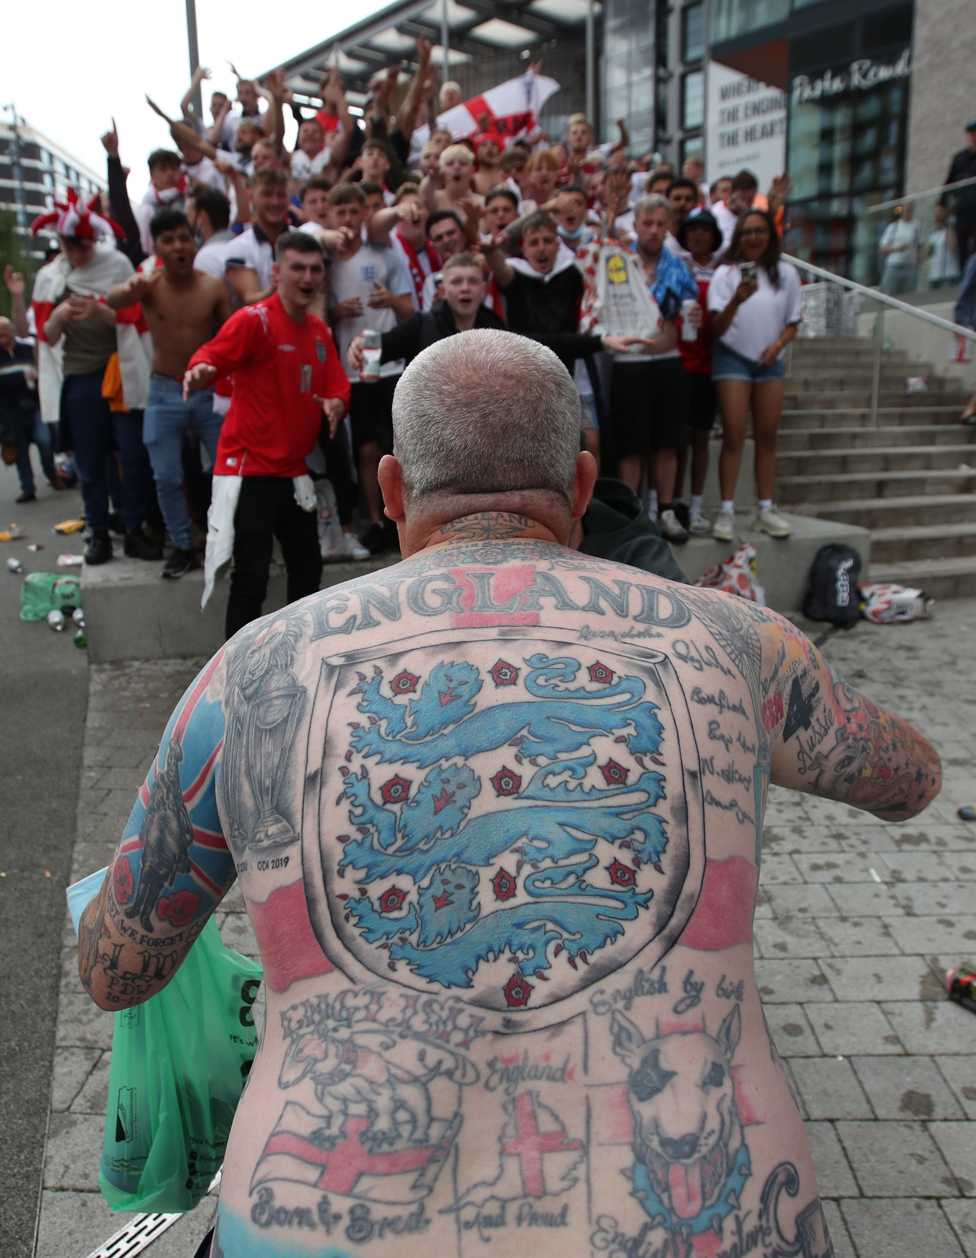 A fan is seen with England tattoos on Wembley Way outside Wembley Stadium, on 11 July 2021